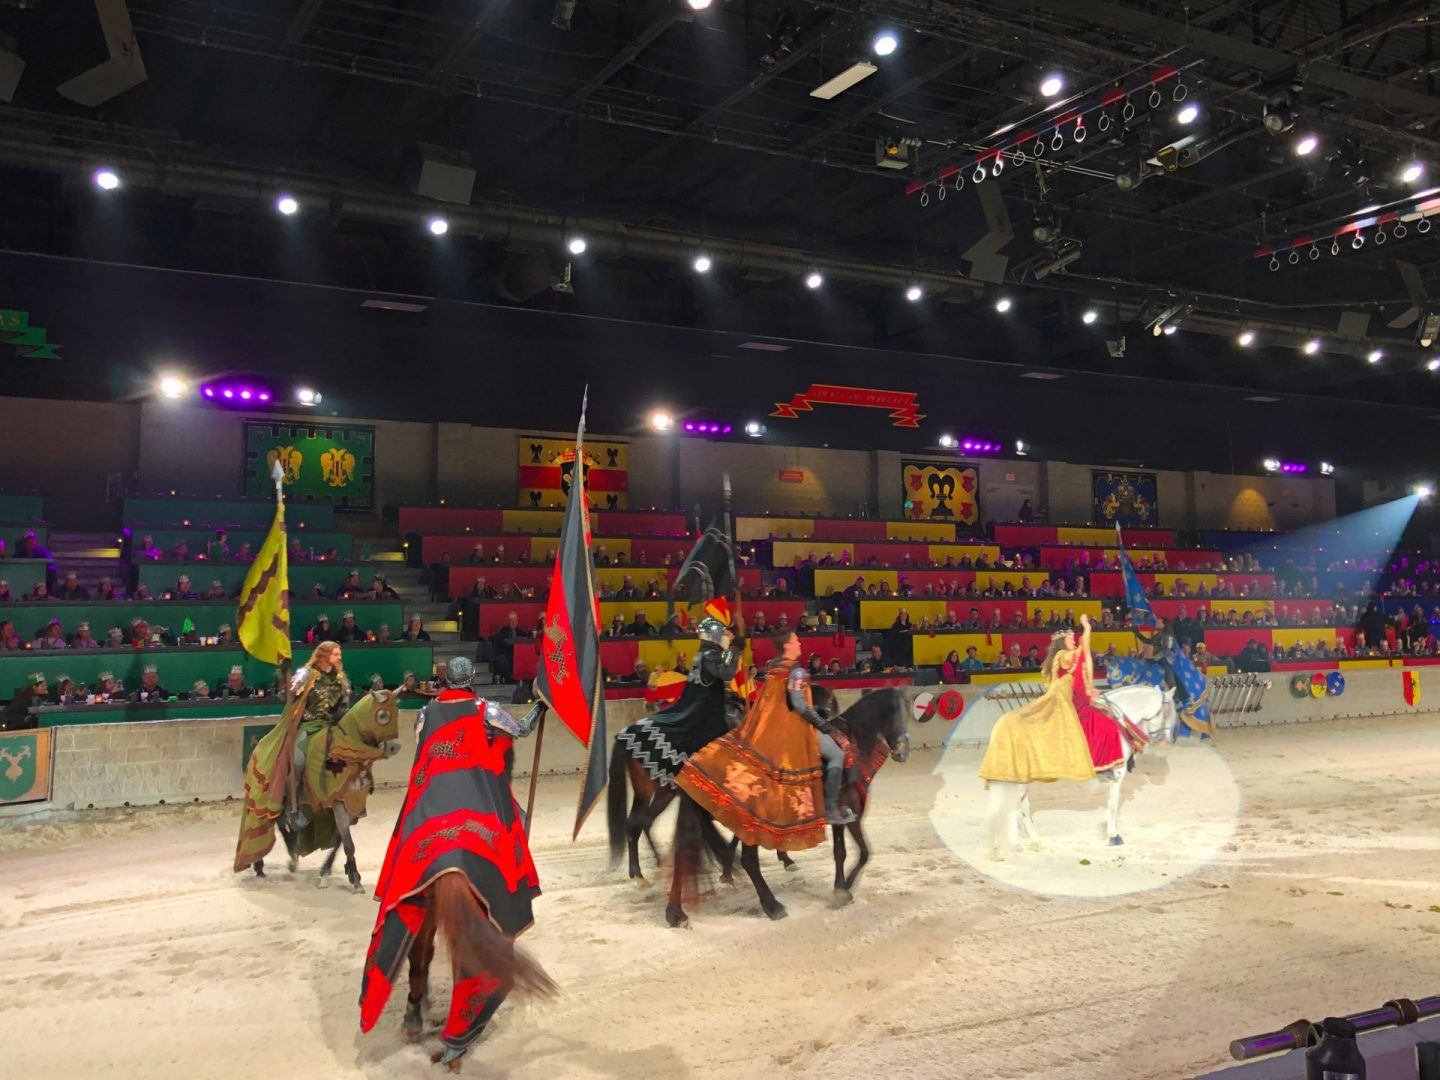 Alterntaive to Video Games: Medieval Times